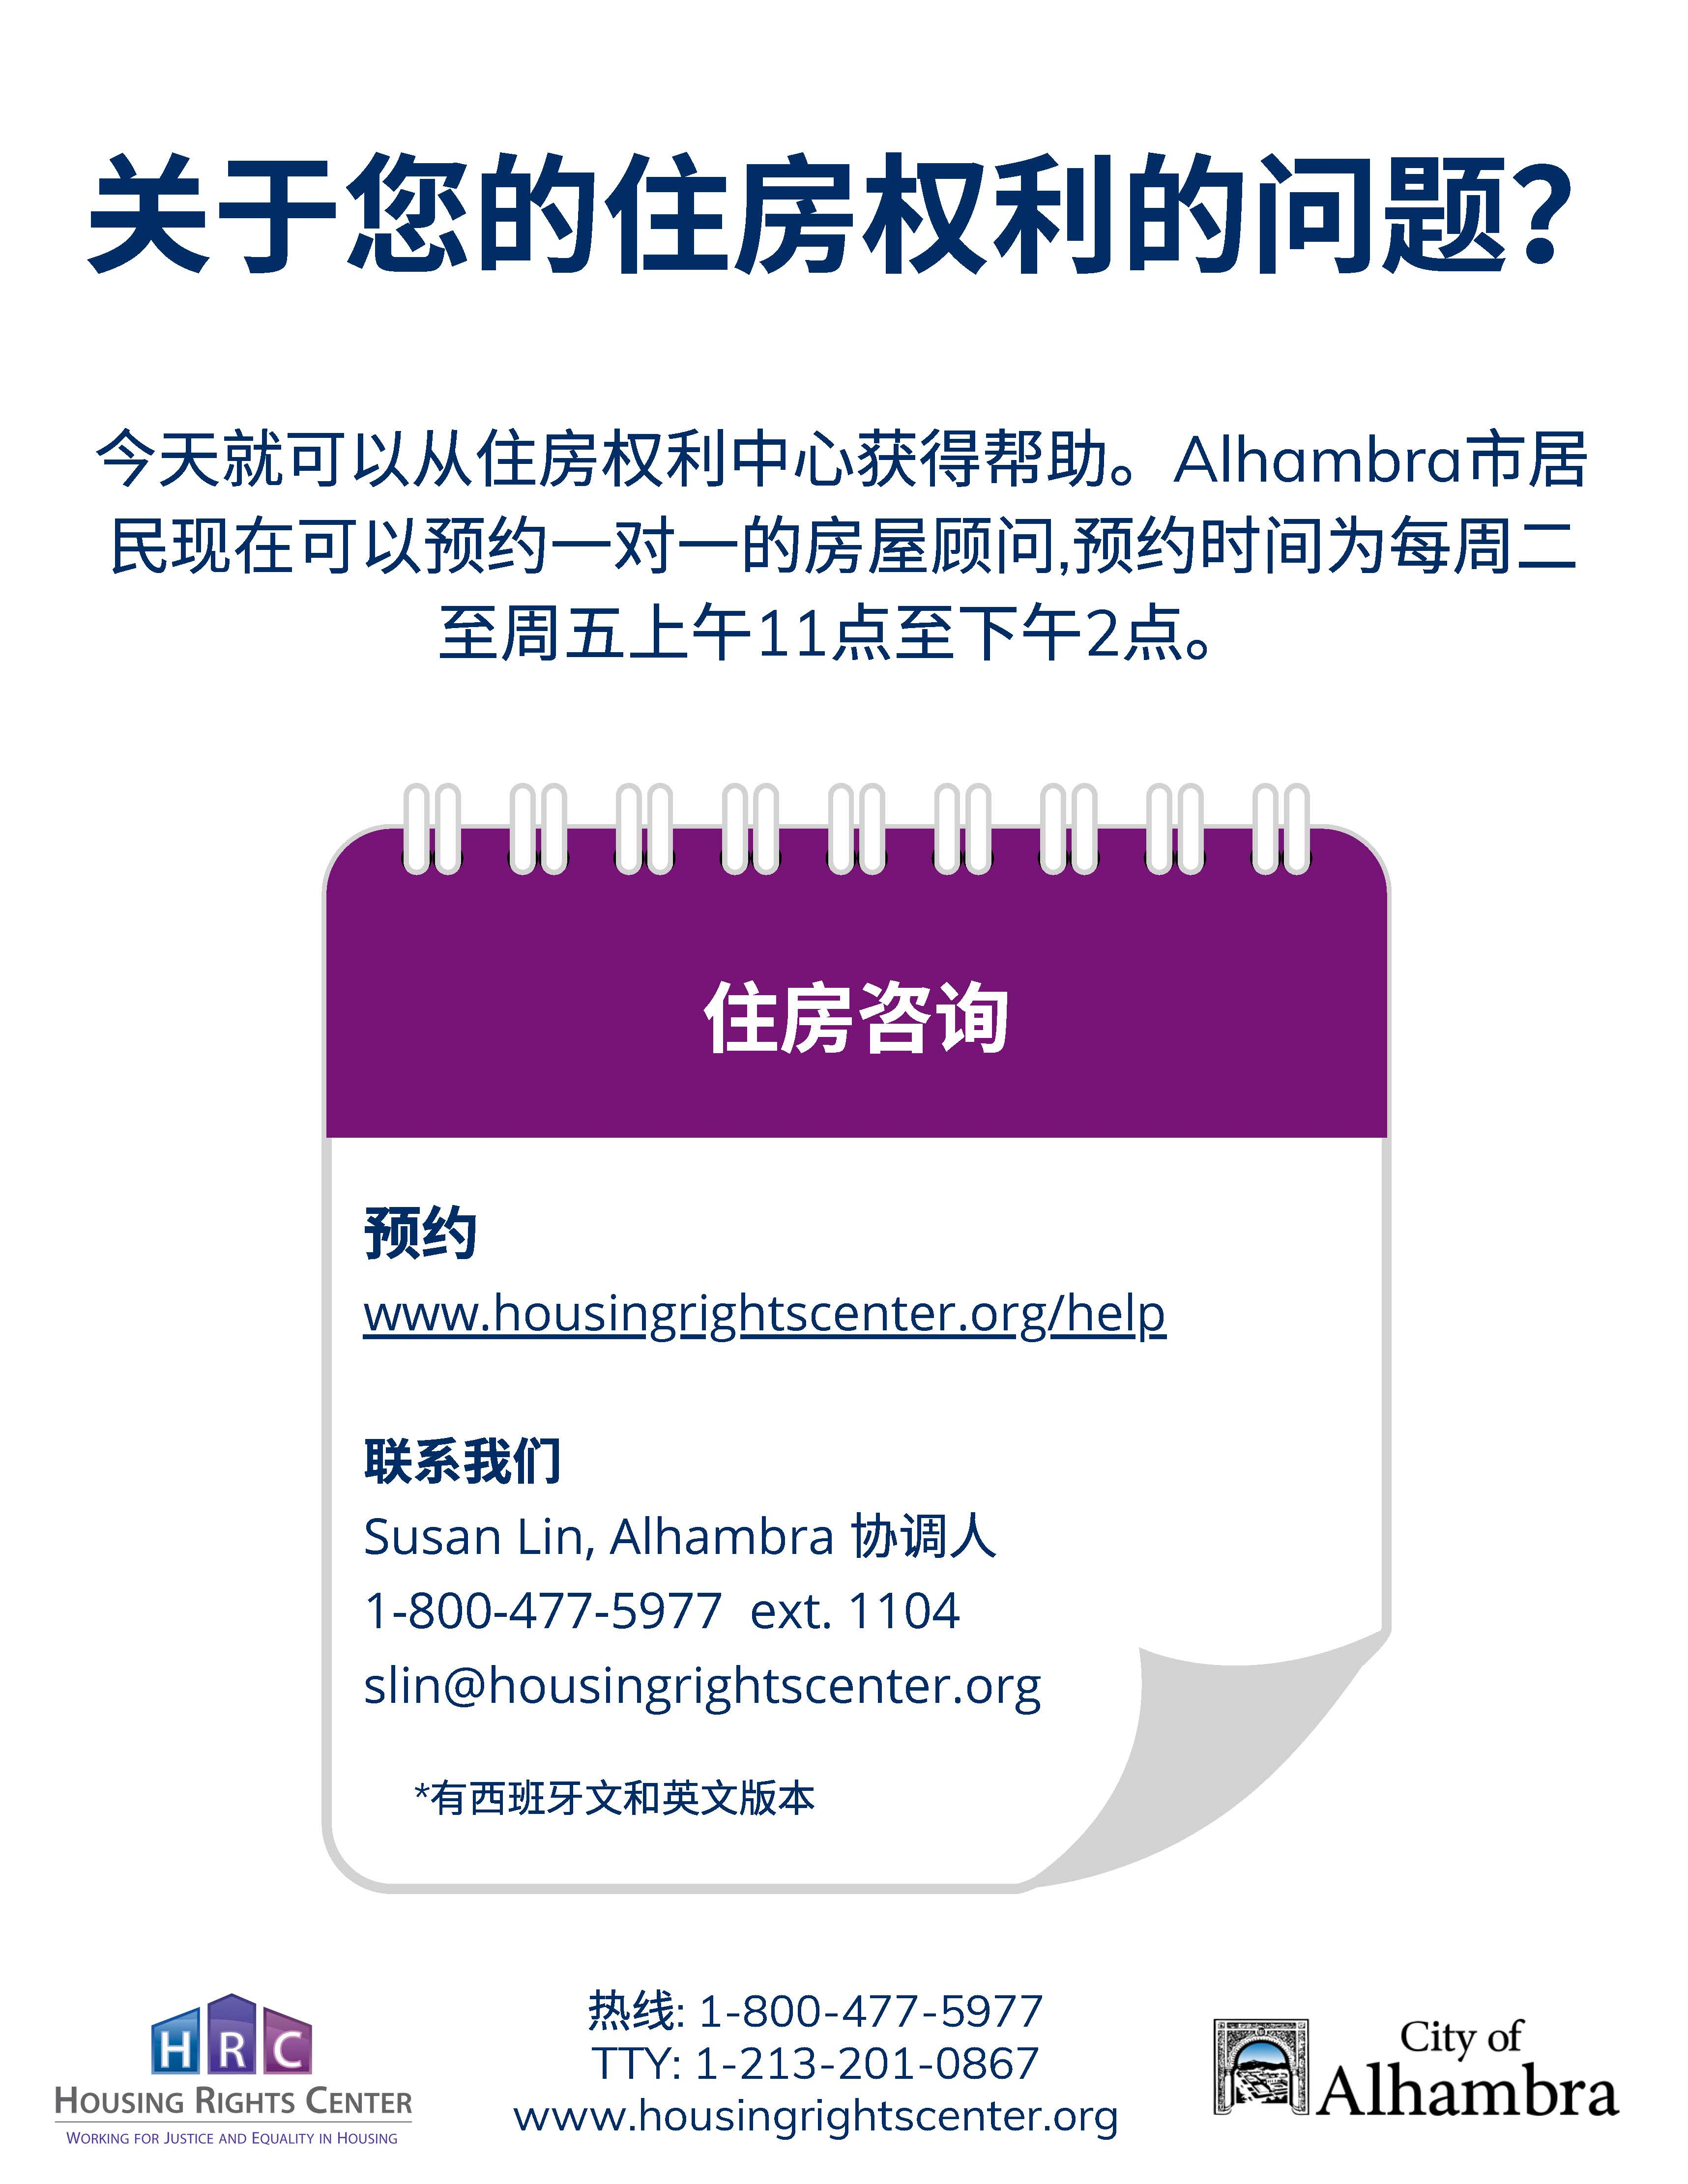 Housing rights appointment info in Chinese